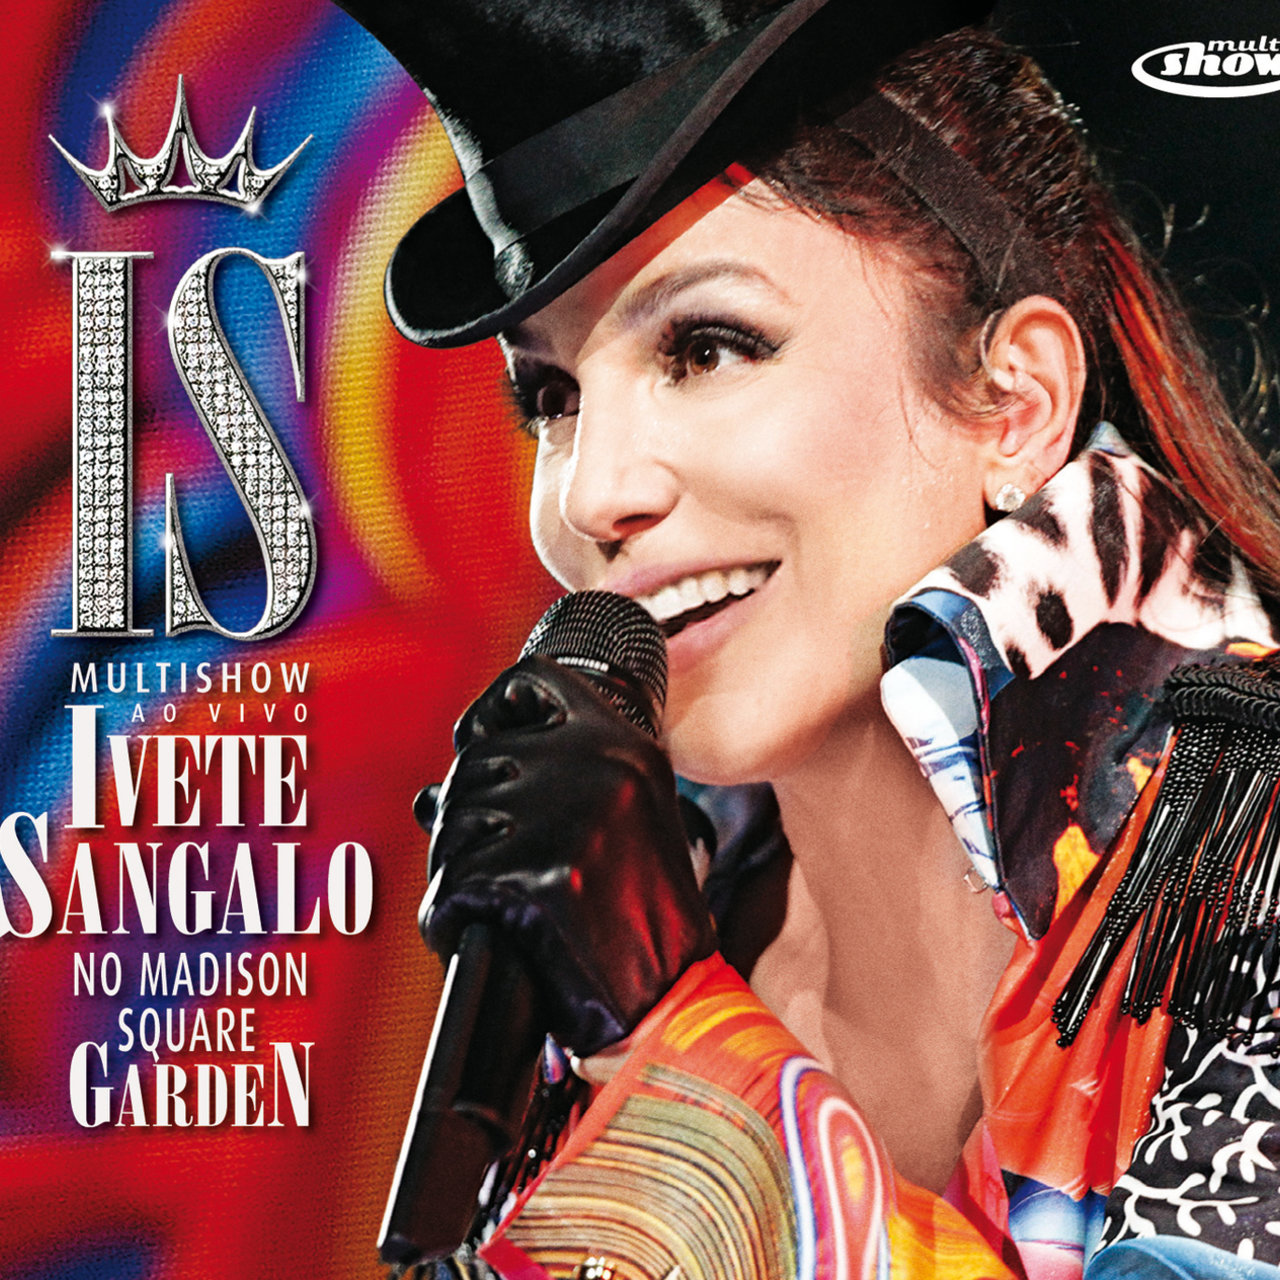 Multishow Ao Vivo - Ivete Sangalo No Madison Square Garden (CD Bônus)